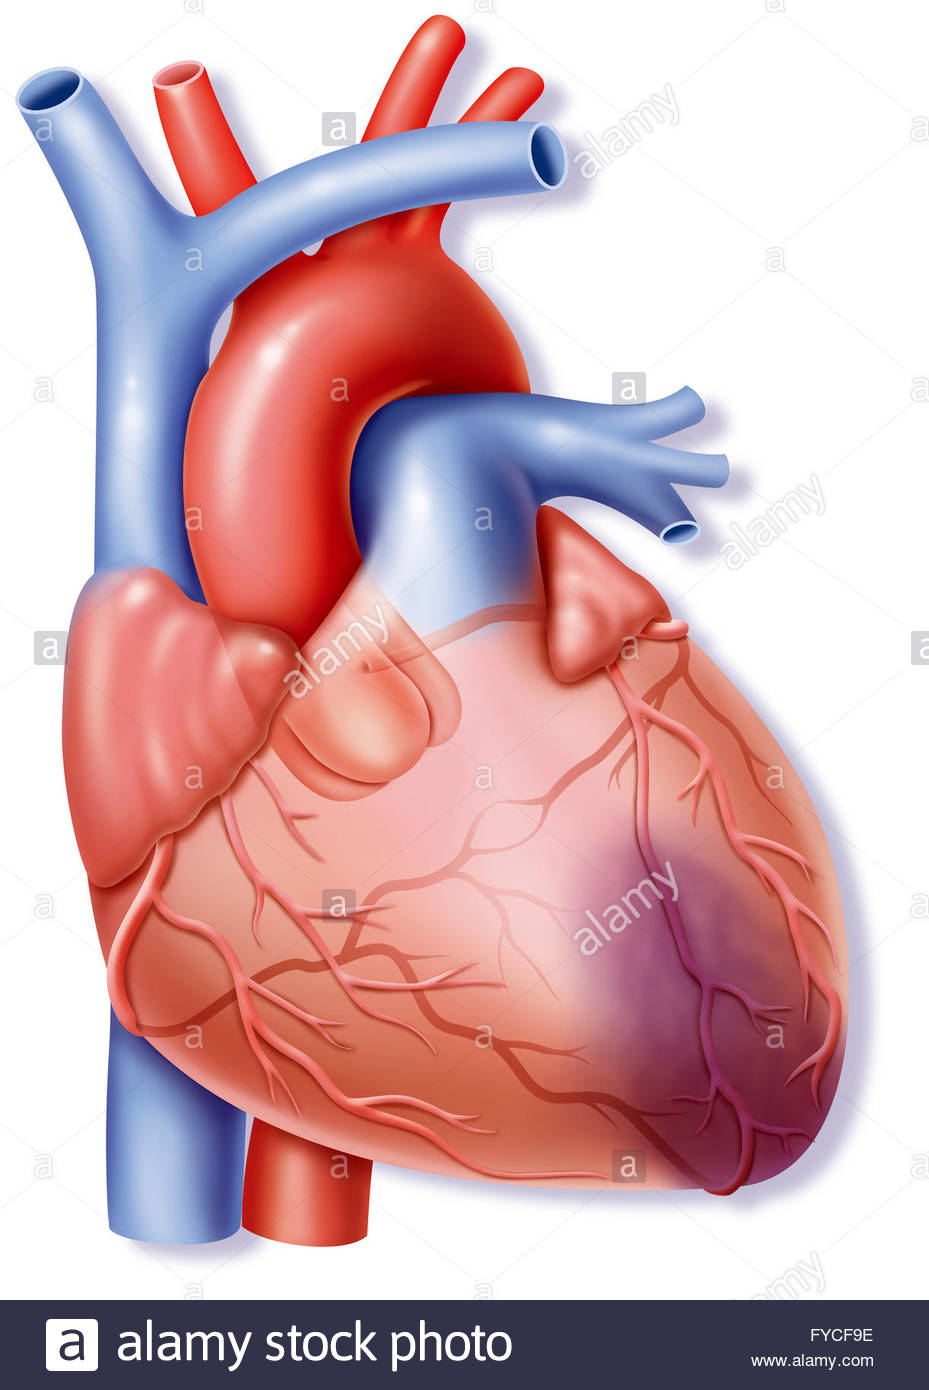 929x1390 Heart Attack, Drawing Stock Photo 102923002